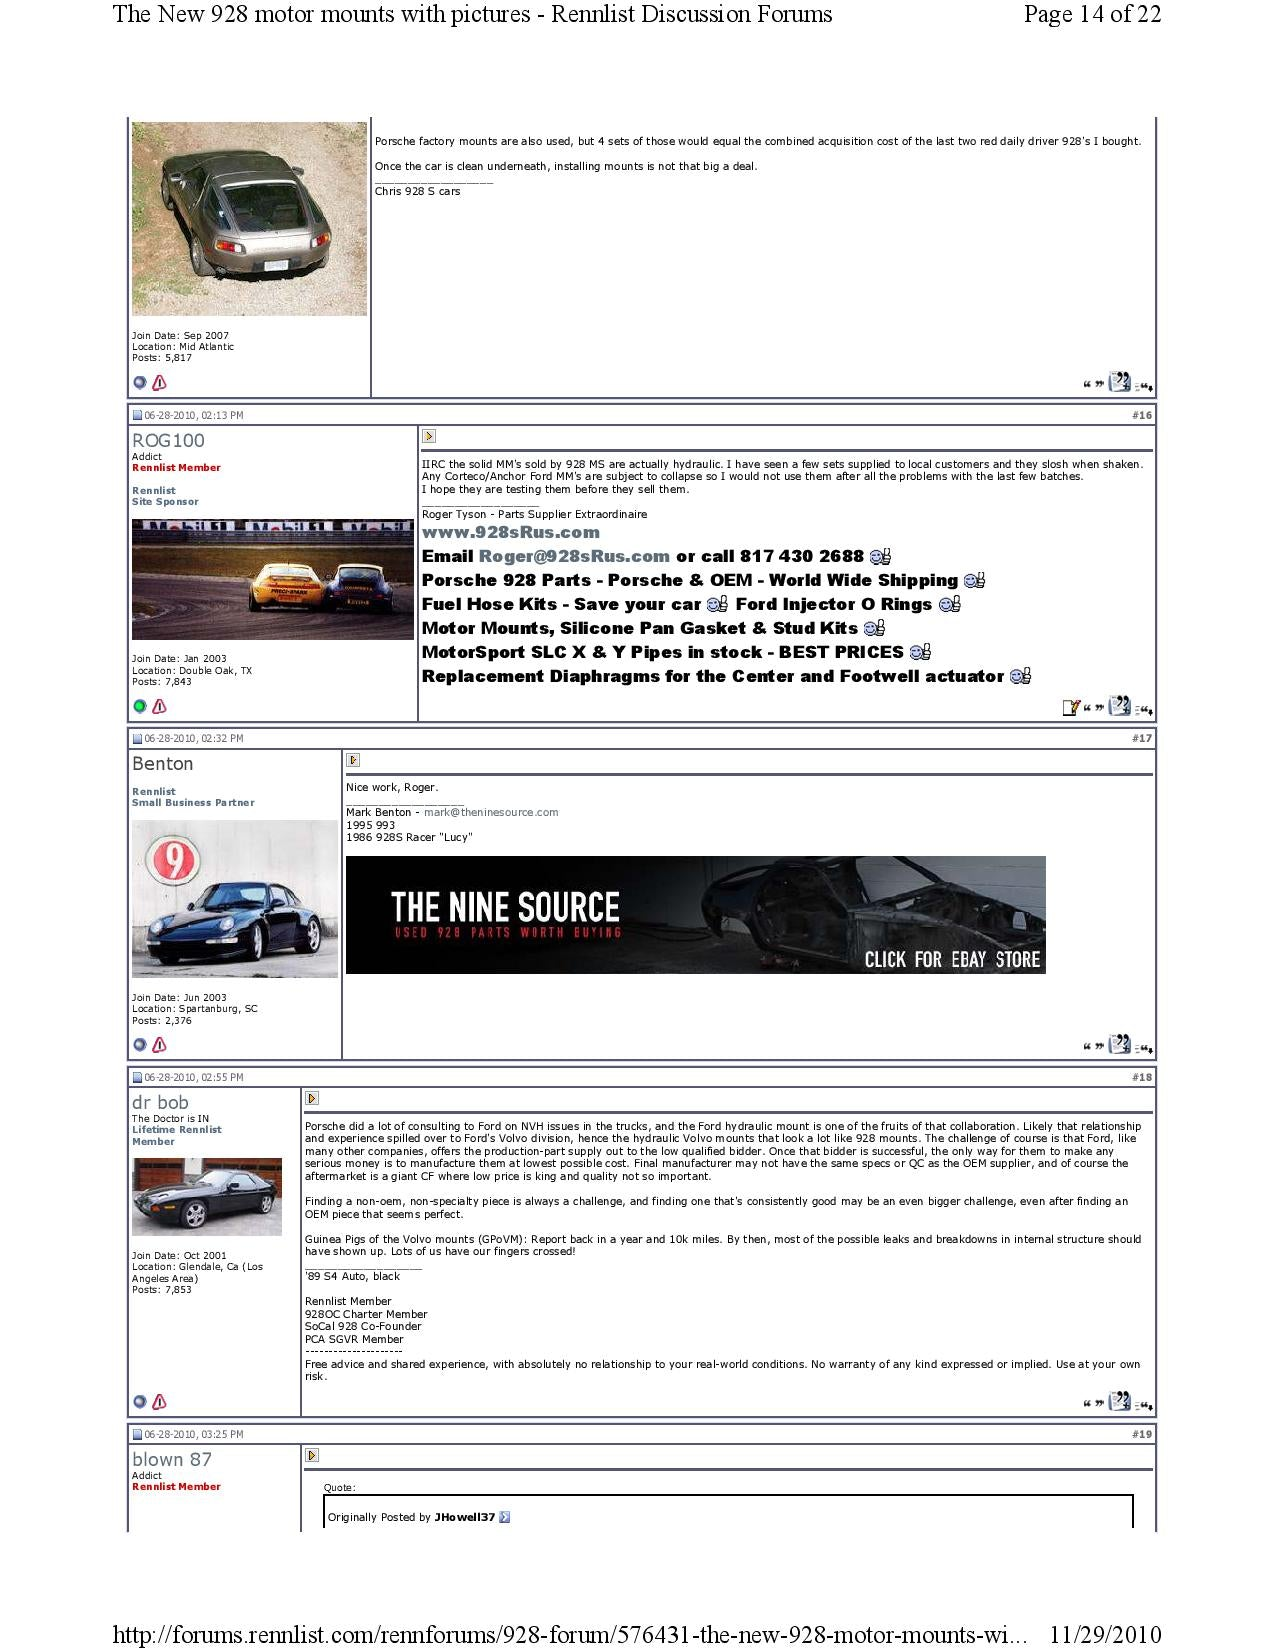 New 928 motor mounts with pictures pg14